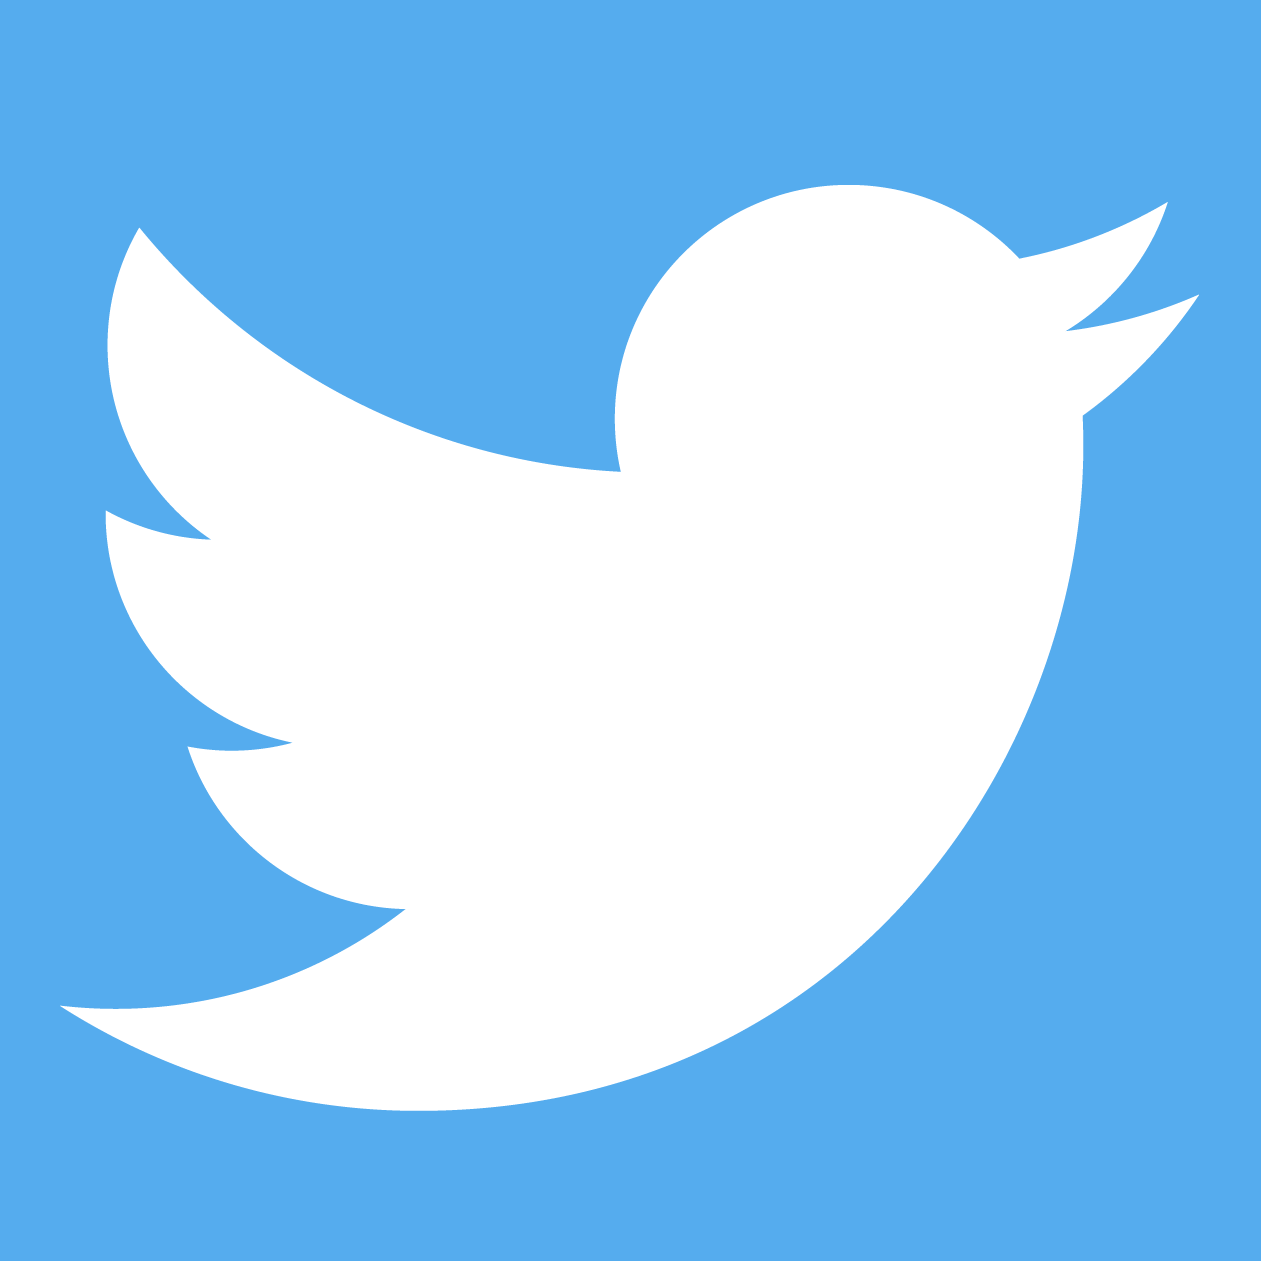 twitter official logo png 10 free Cliparts | Download ...